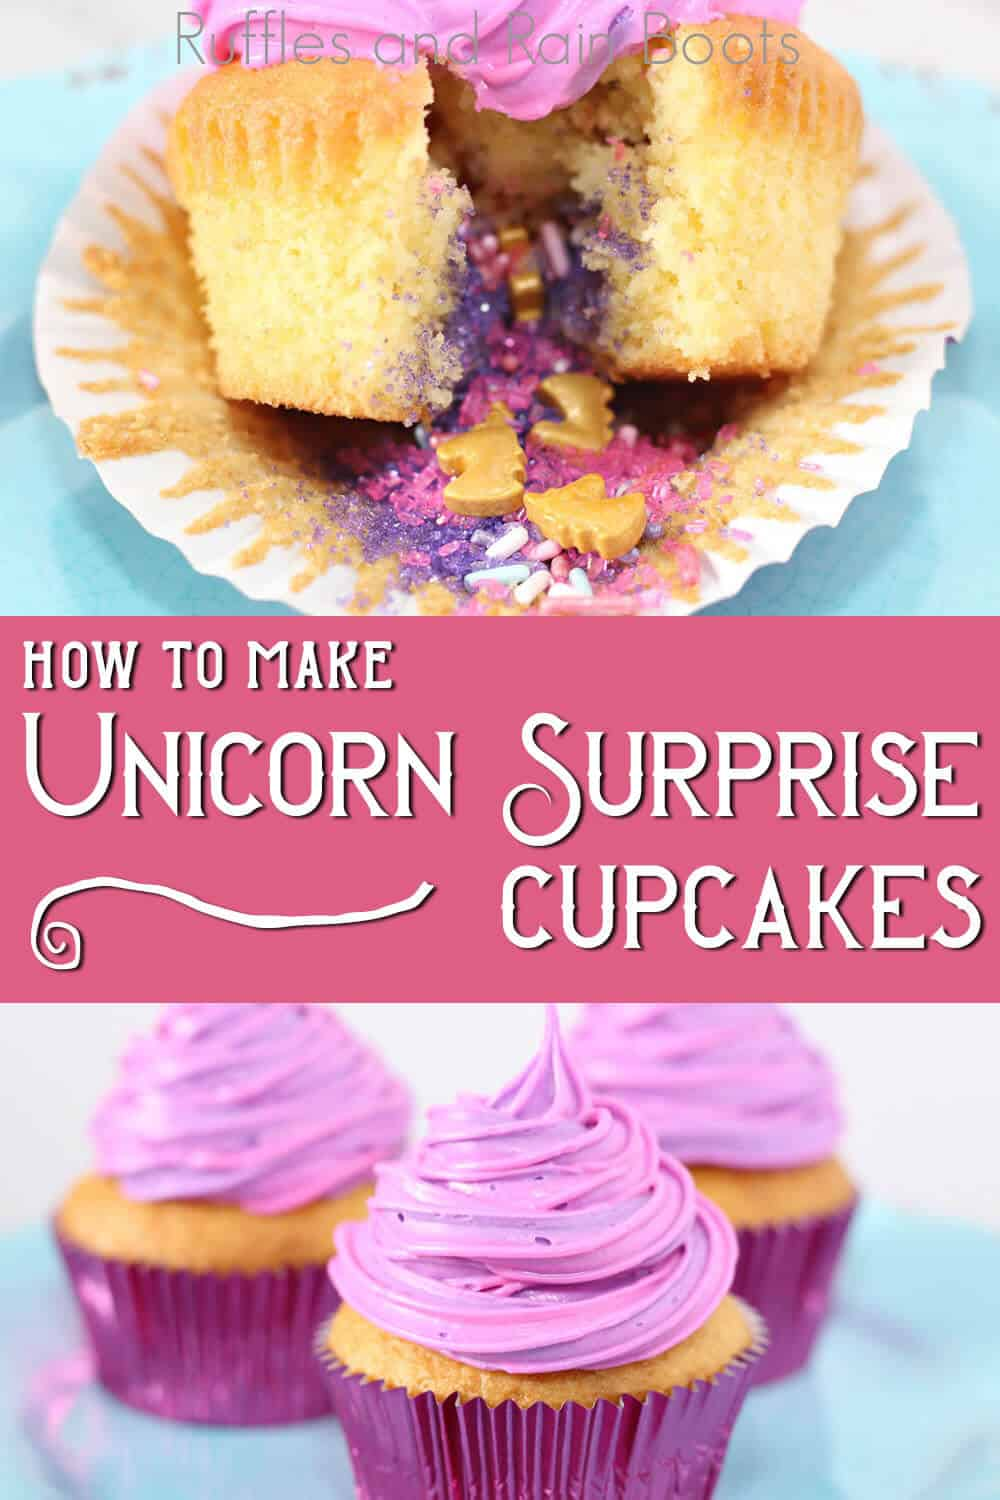 photo collage of cupcakes with sprinkles inside with text which reads how to make unicorn surprise cupcakes